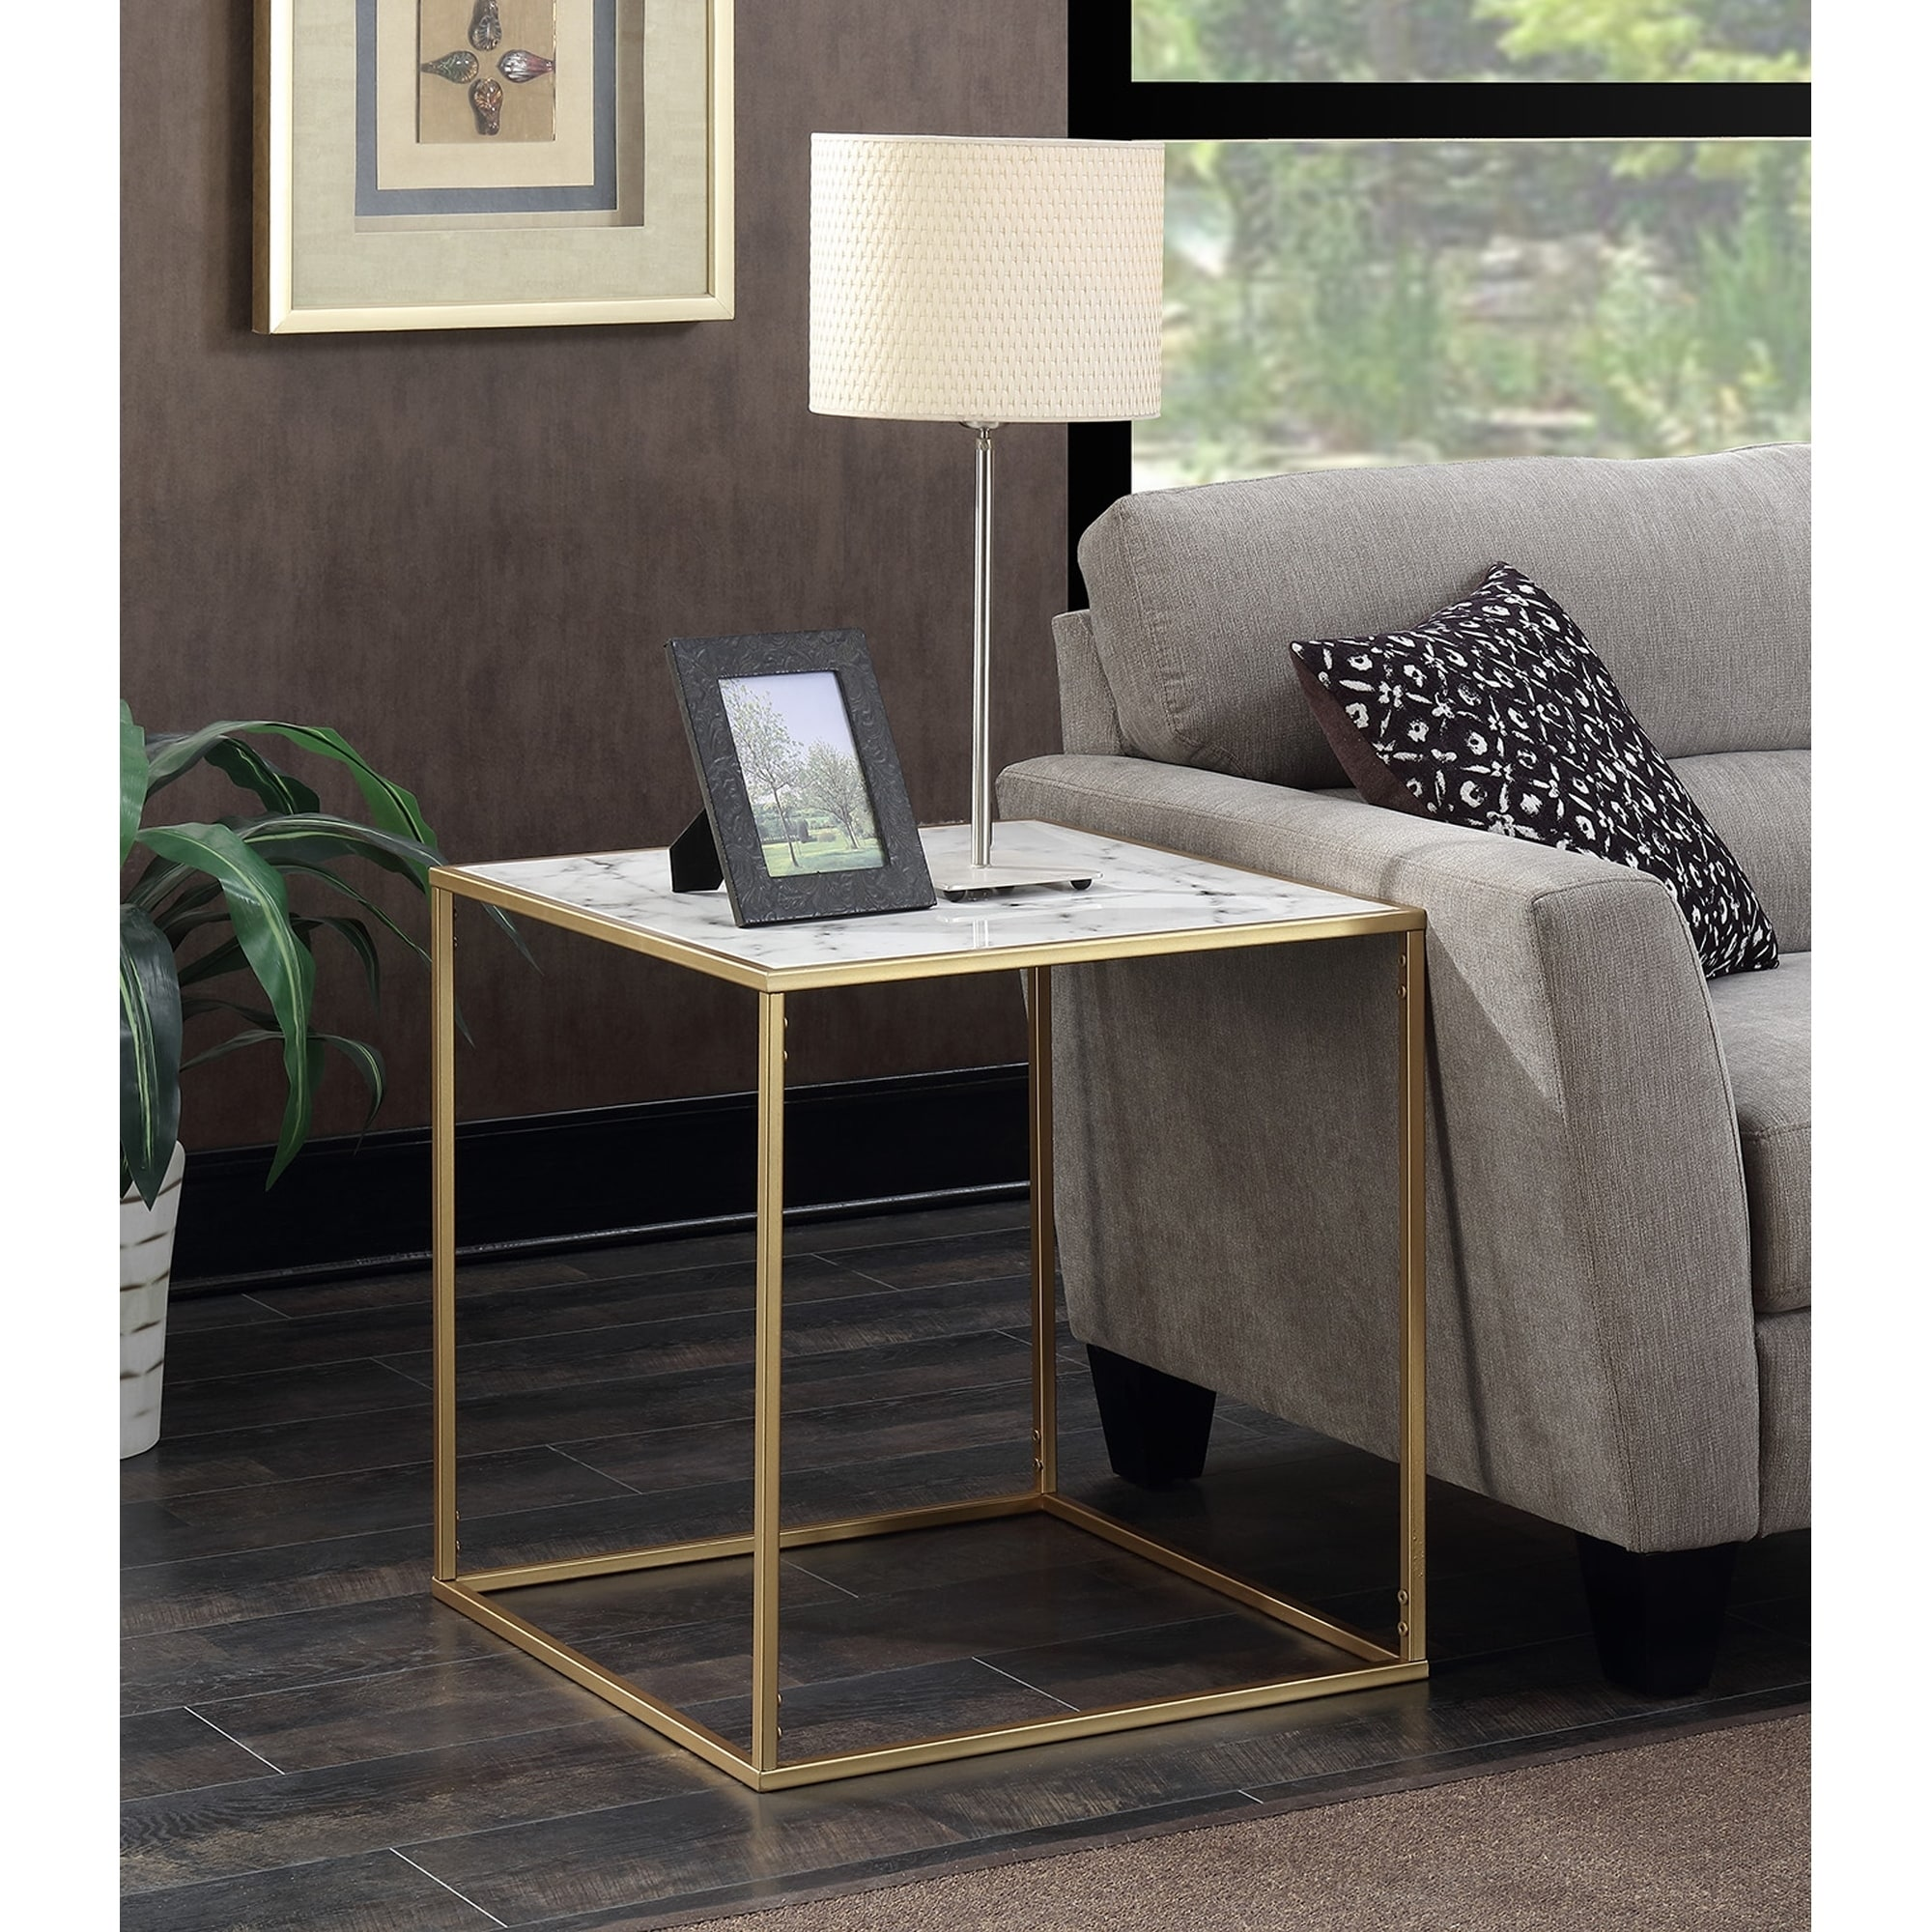 Faux White Marble Coffee Table Set: Shop Convenience Concepts Gold Coast Faux Marble End Table